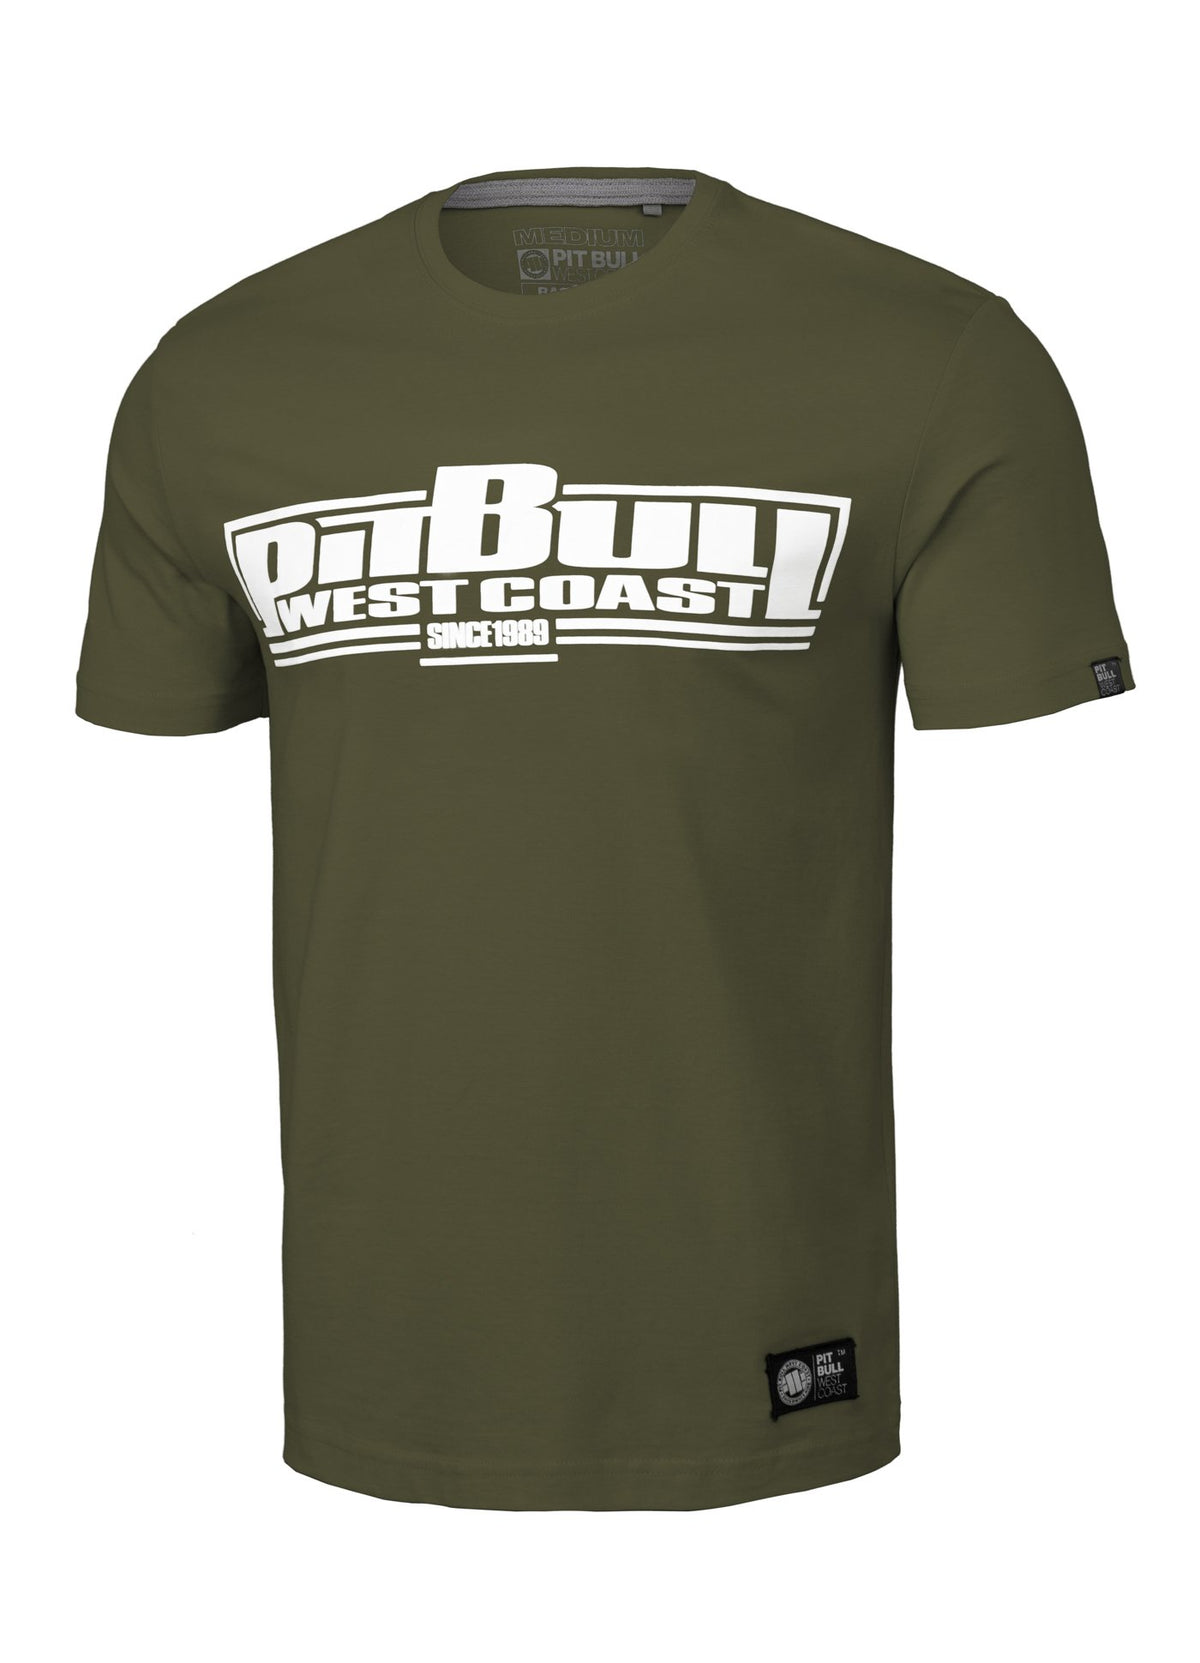 T-shirt CLASSIC BOXING Olive - Pitbull West Coast U.S.A.